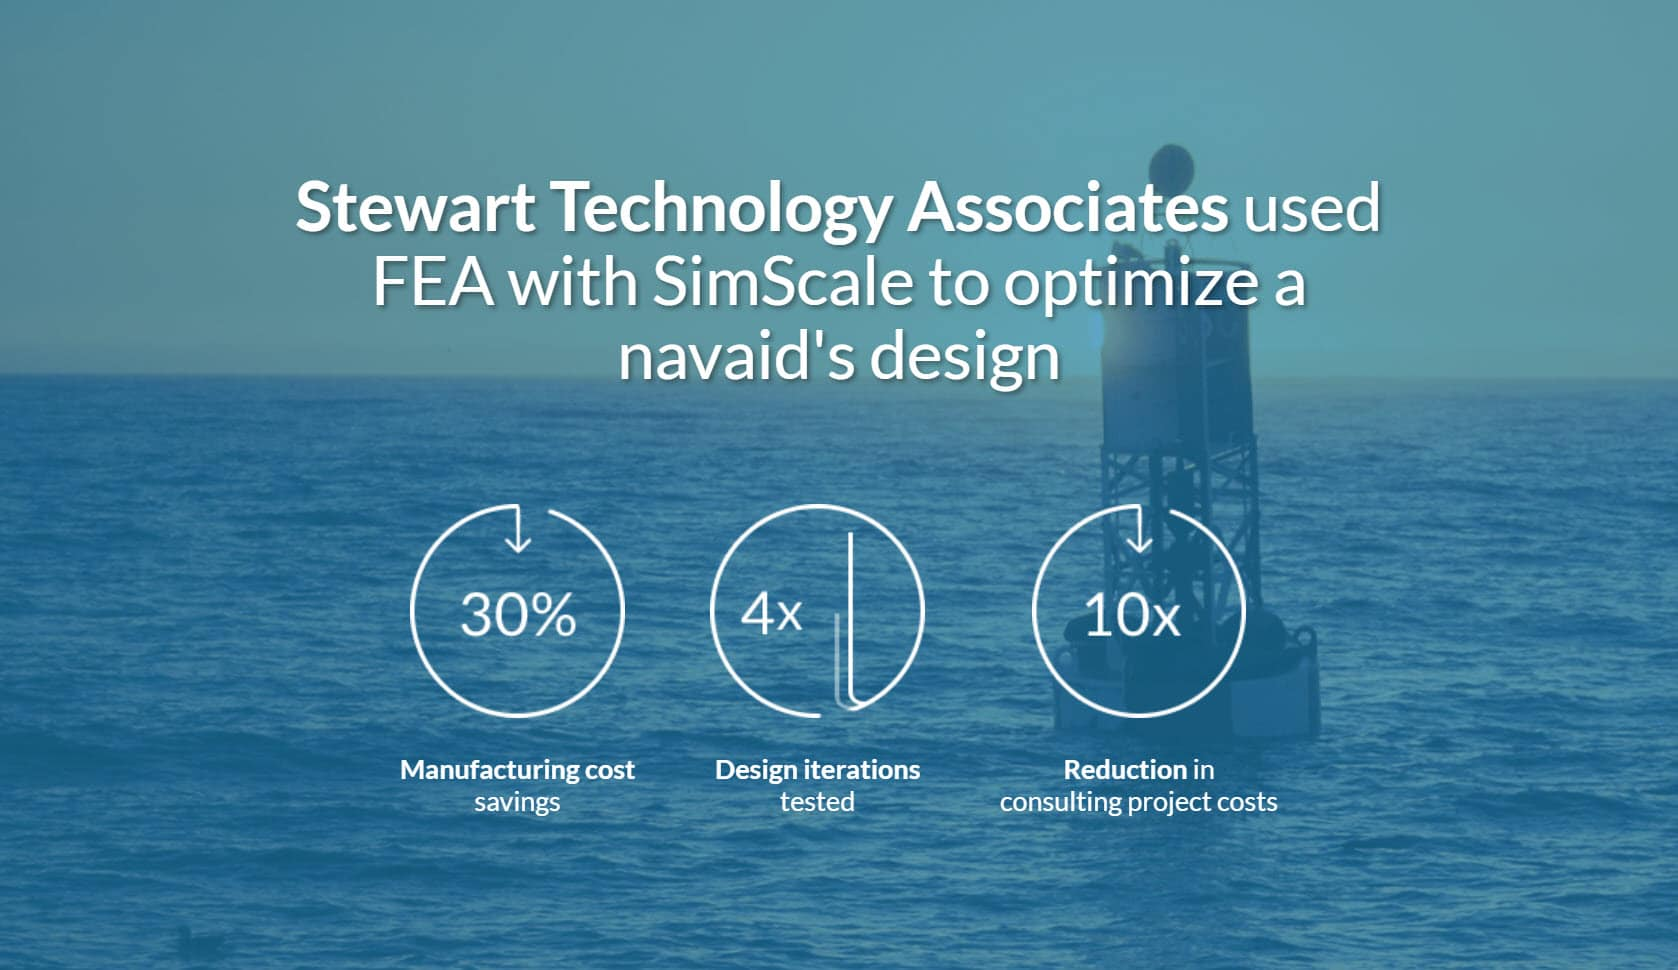 Stewart Technology Associates FEA with SimScale to Optimize